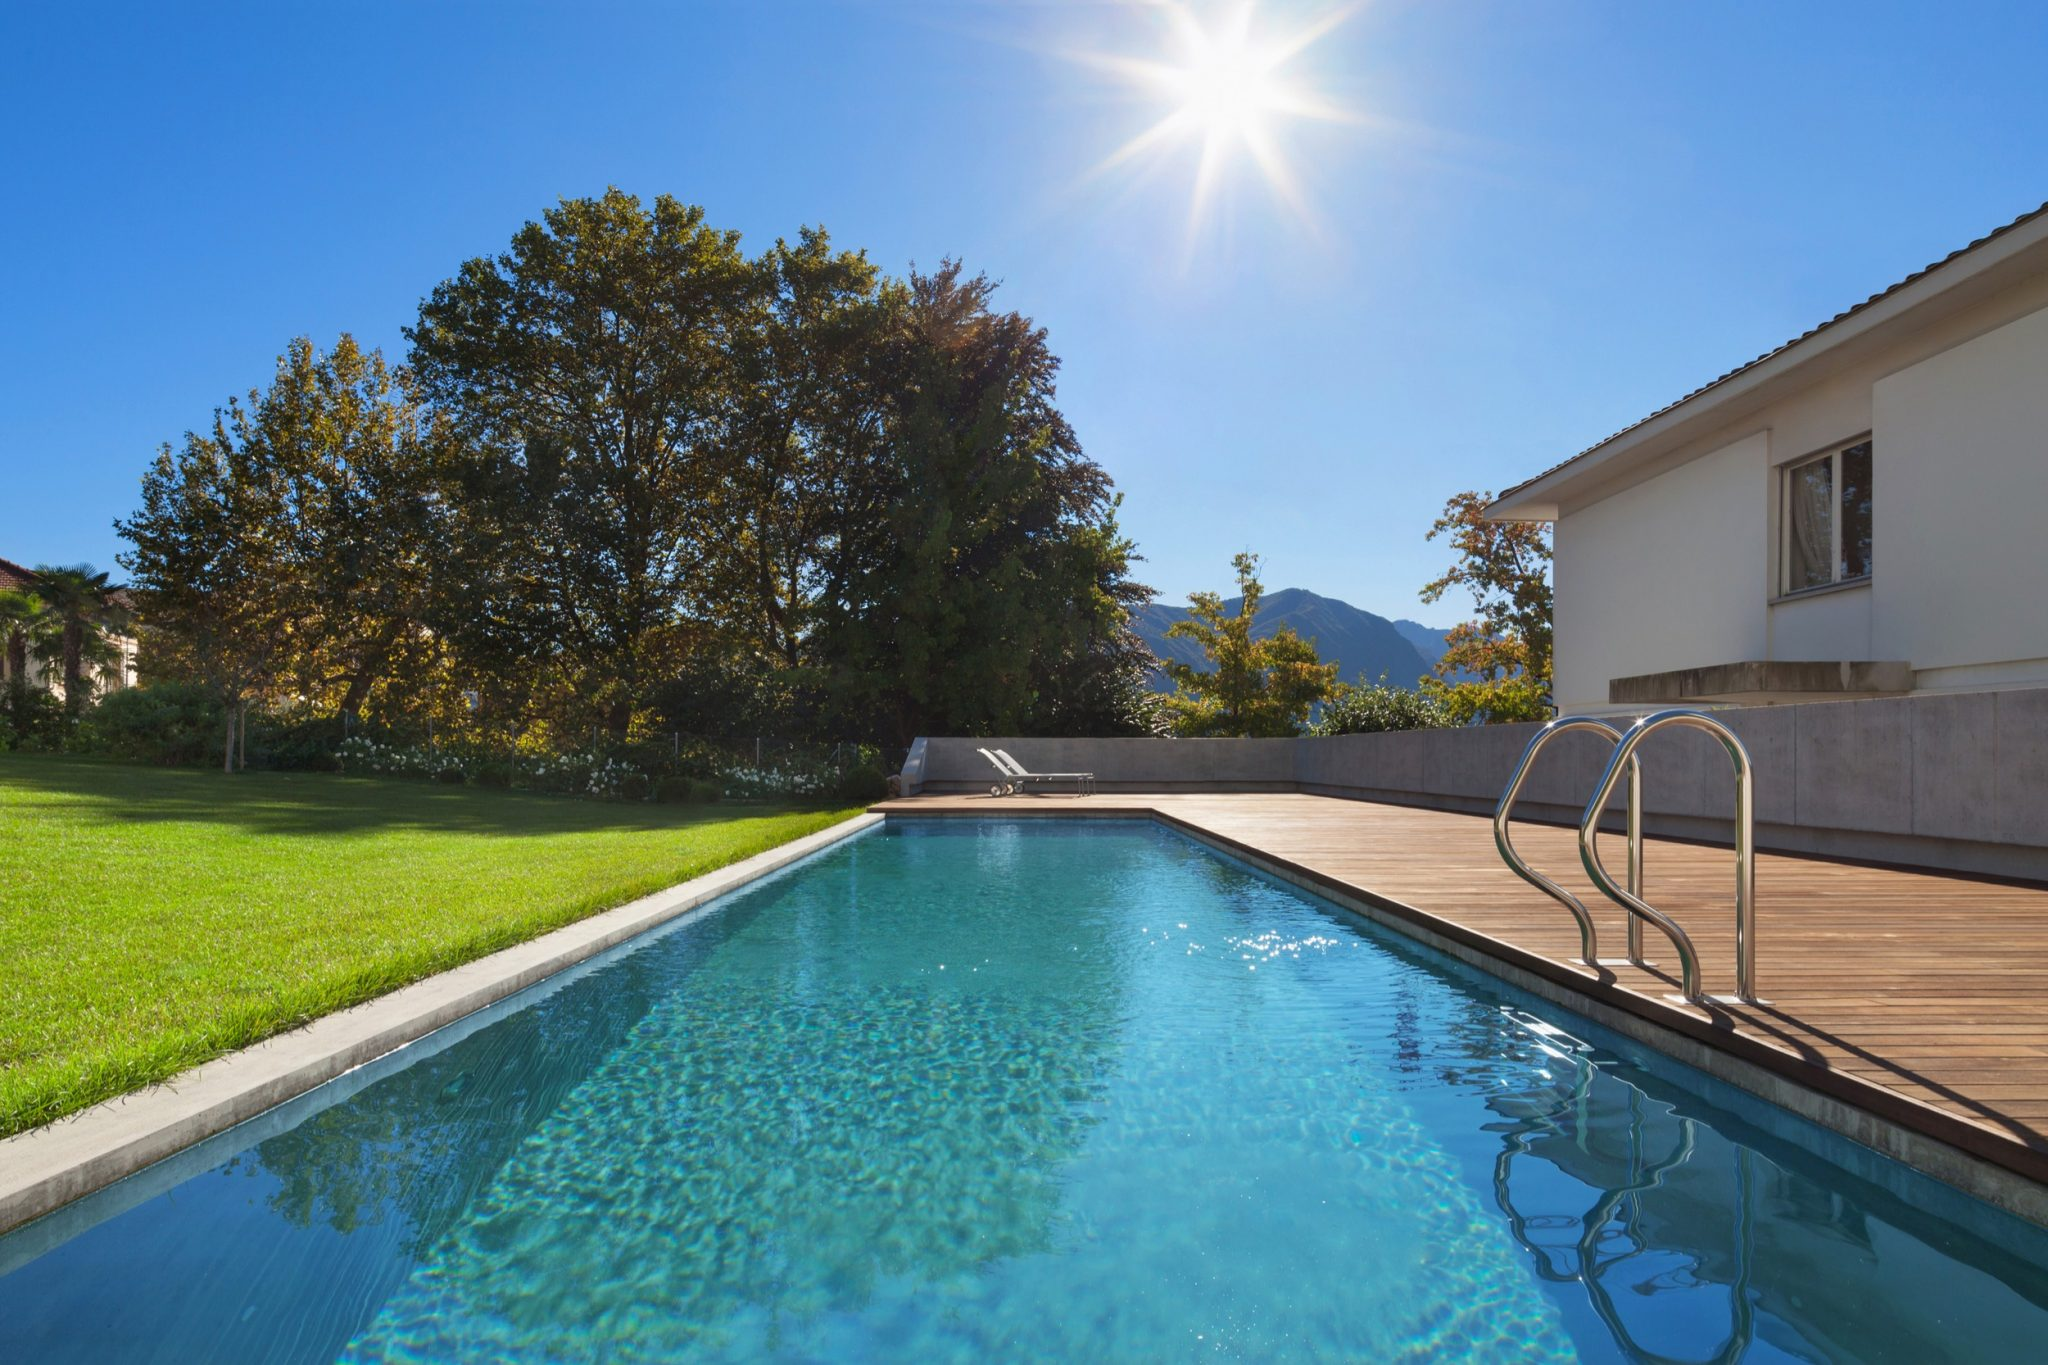 pool areas artificial grass